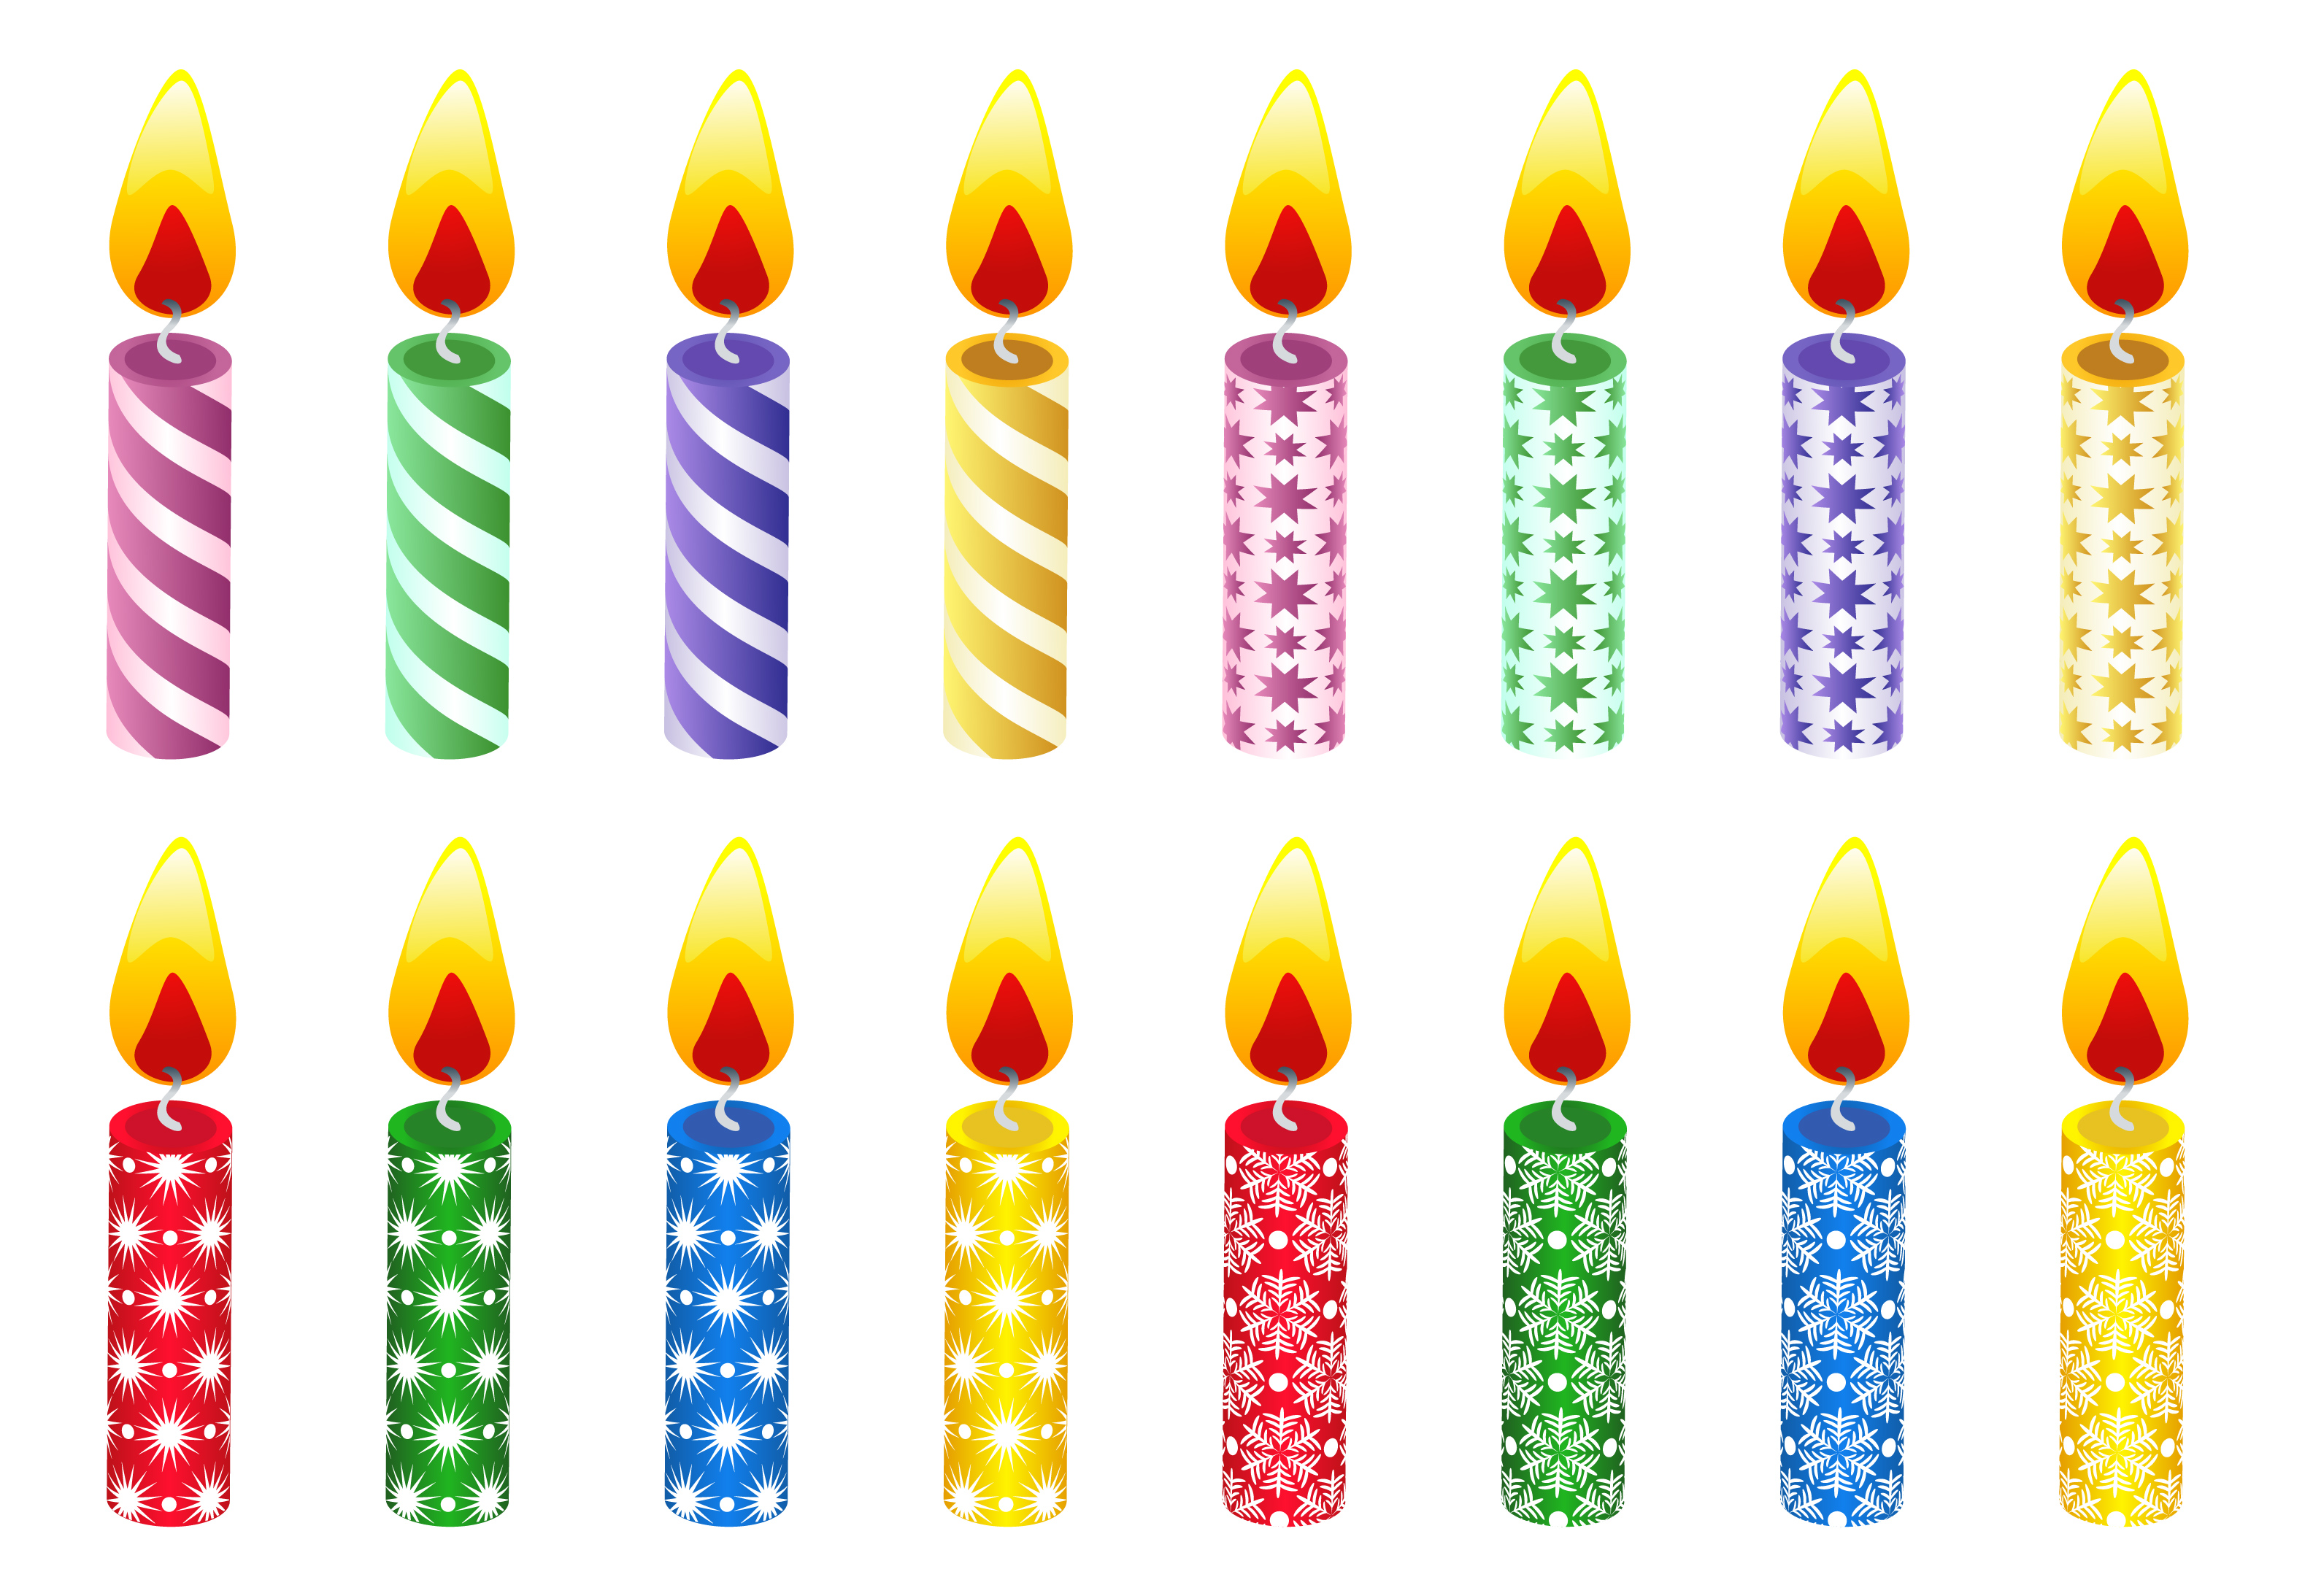 This Is A Great Set Of Birthday Candles -This Is A Great Set Of Birthday Candles To Use For Games Or Classroom-16